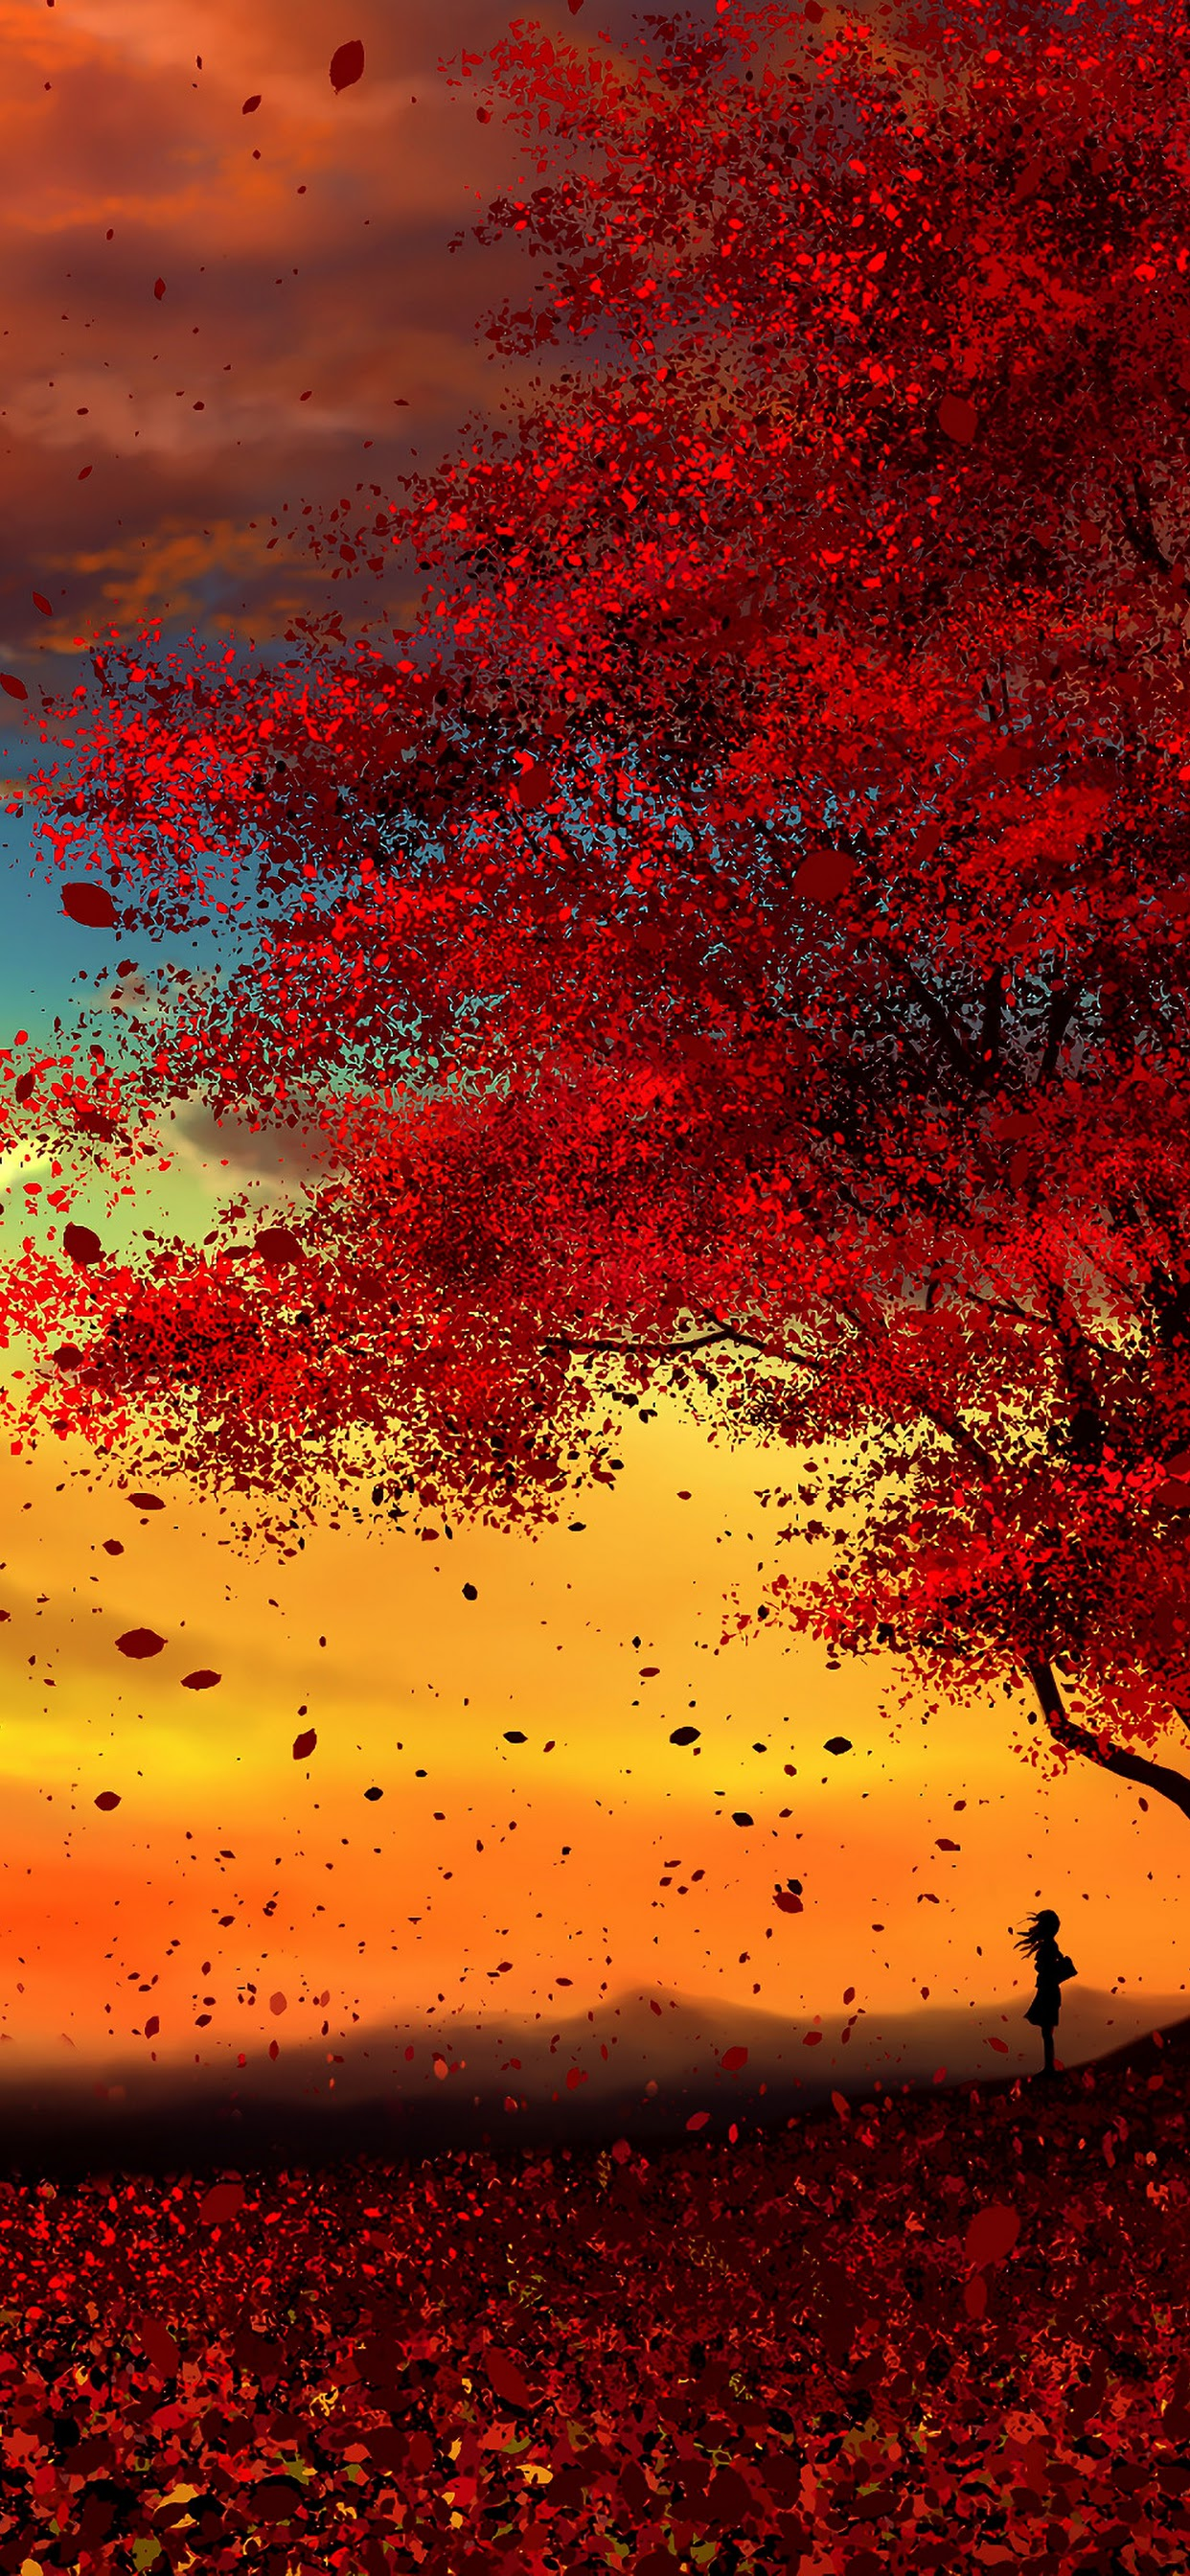 Anime Autumn Scenery Sunset 4k Wallpaper 46